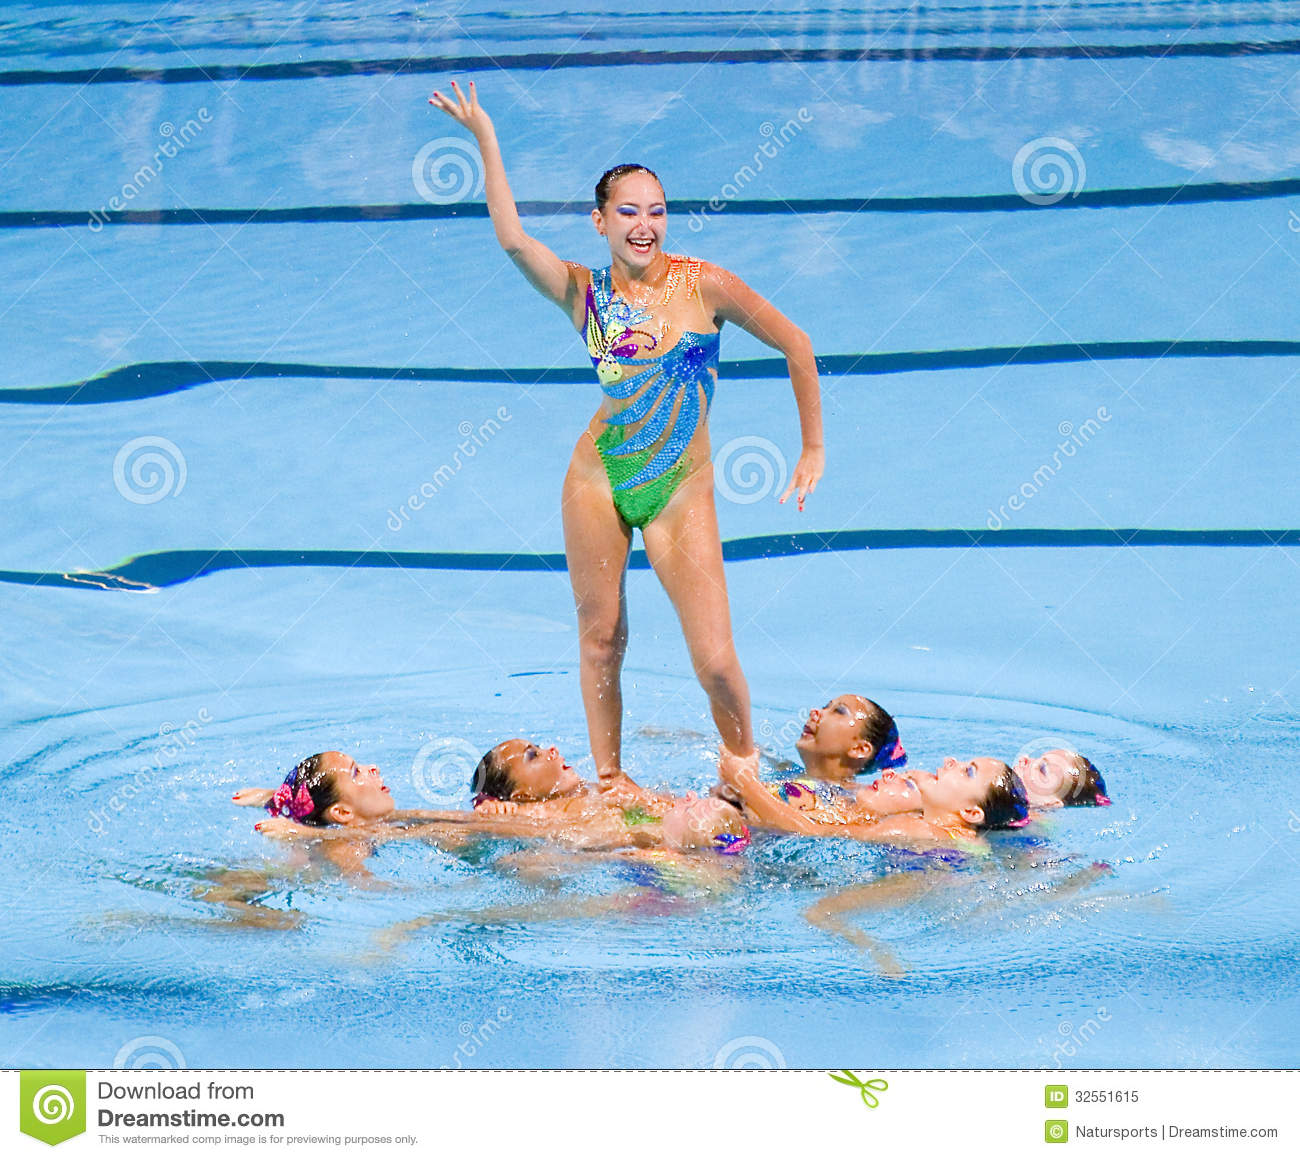 Synchronized swimming kazakhstan editorial image image for Swimming images